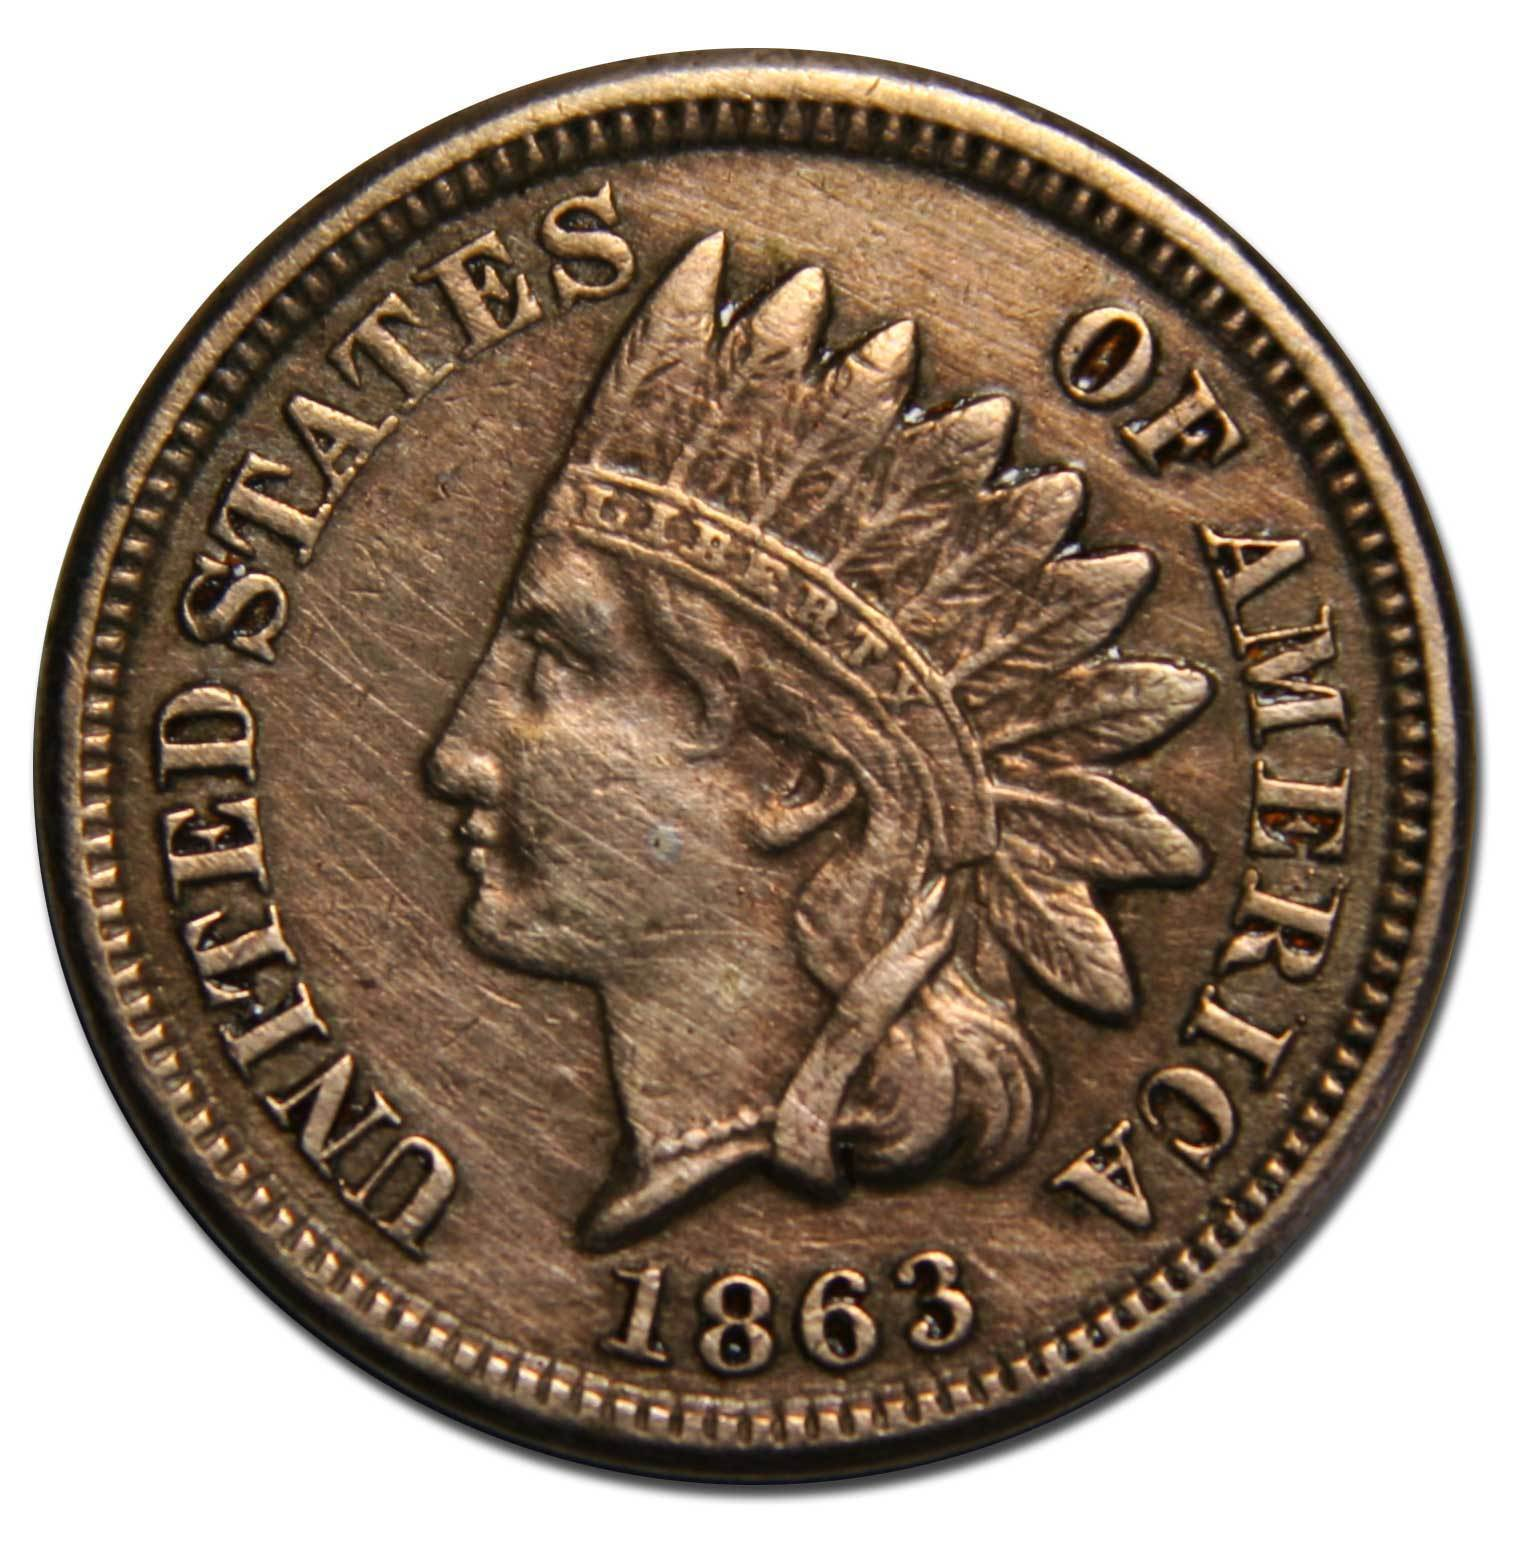 1863 One Cent Indian Head Penny Coin Lot# A 2177